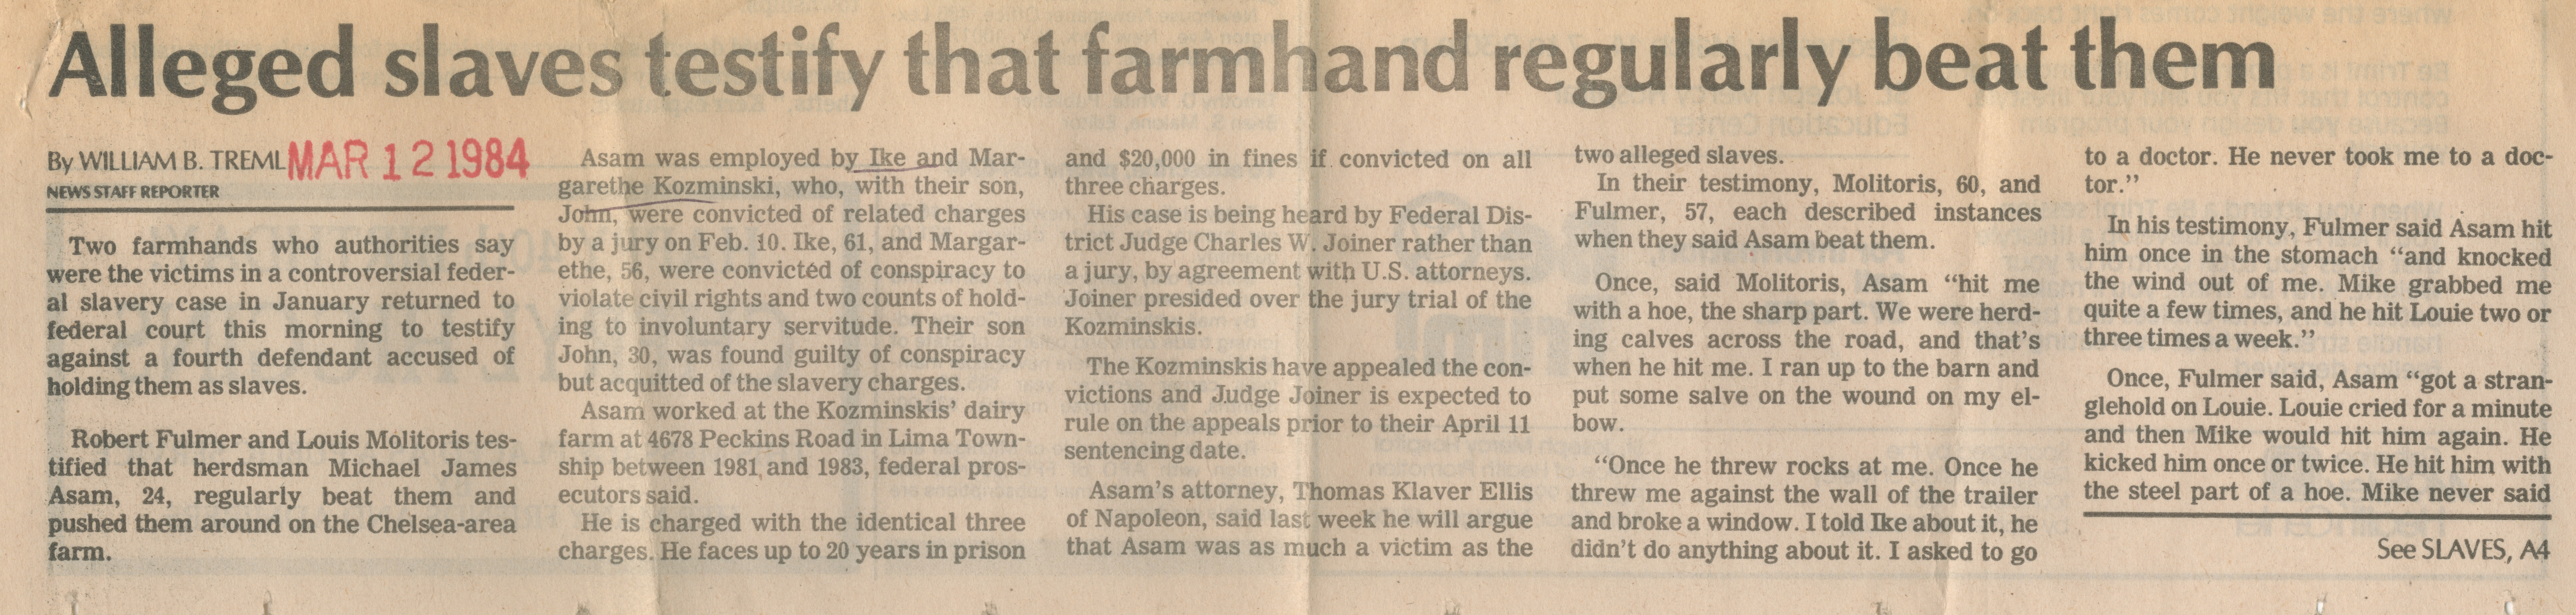 Alleged slaves testify that farmhand regularly beat them image